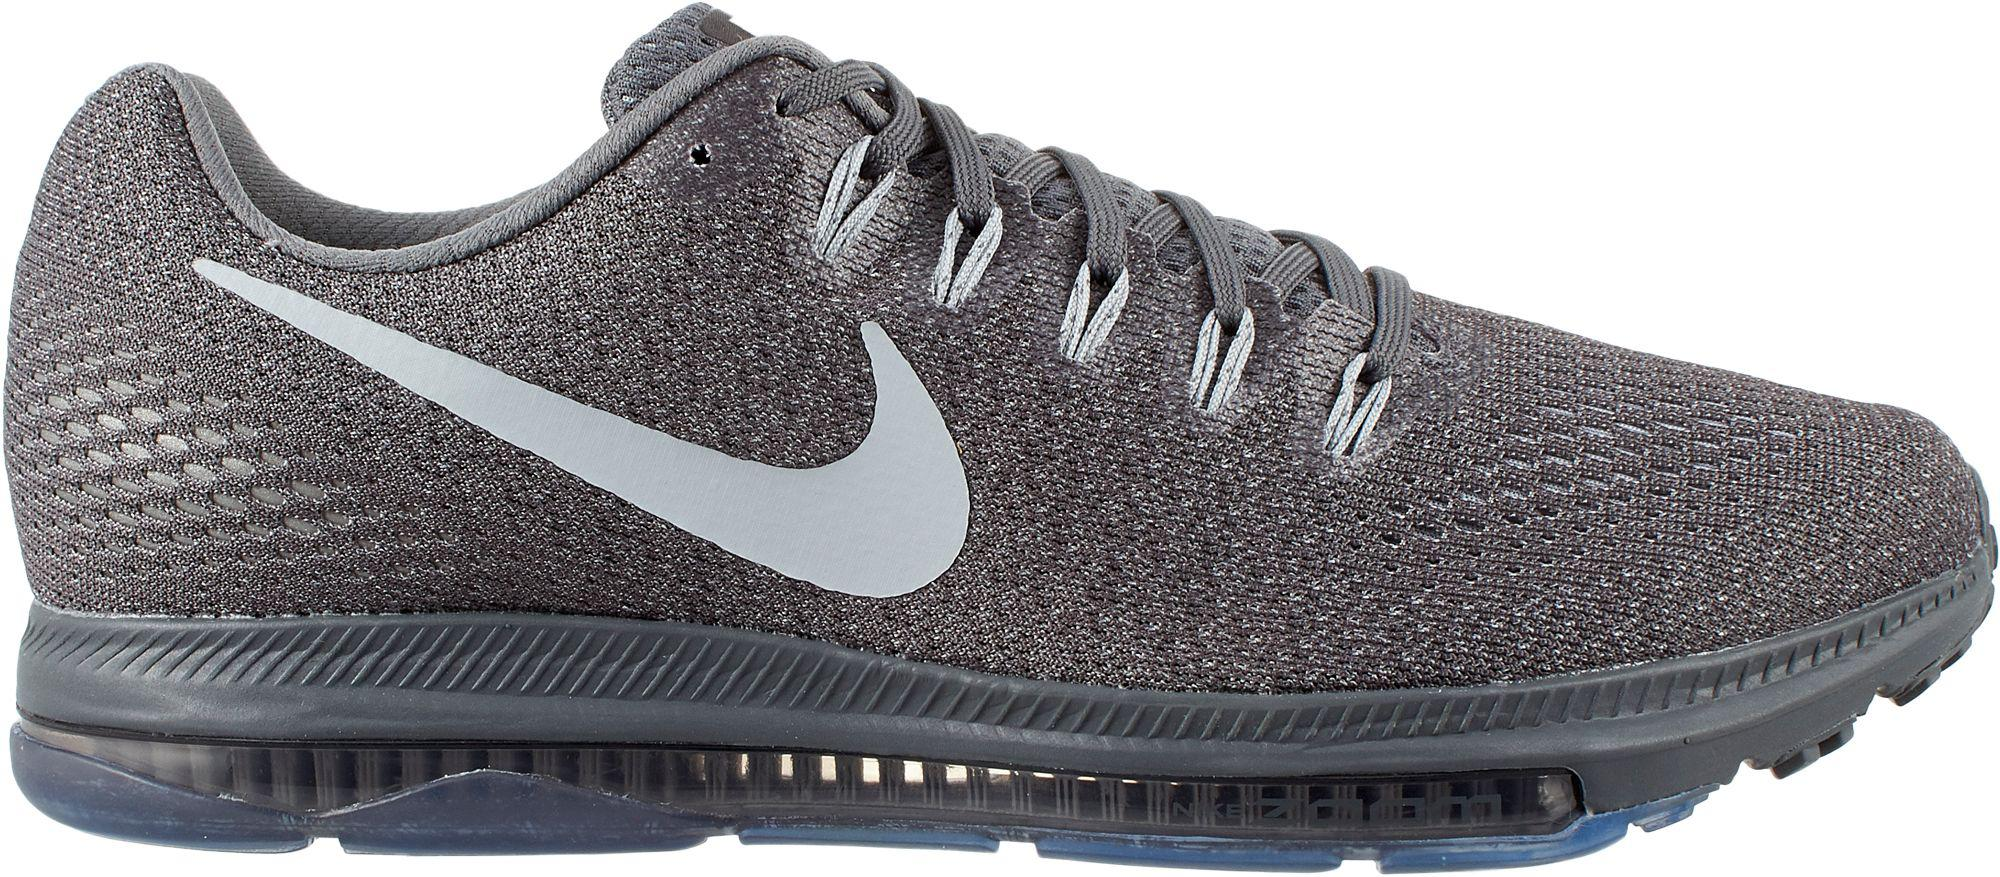 8070fe233fb5 Lyst - Nike Zoom All Out Low Running Shoes in Gray for Men